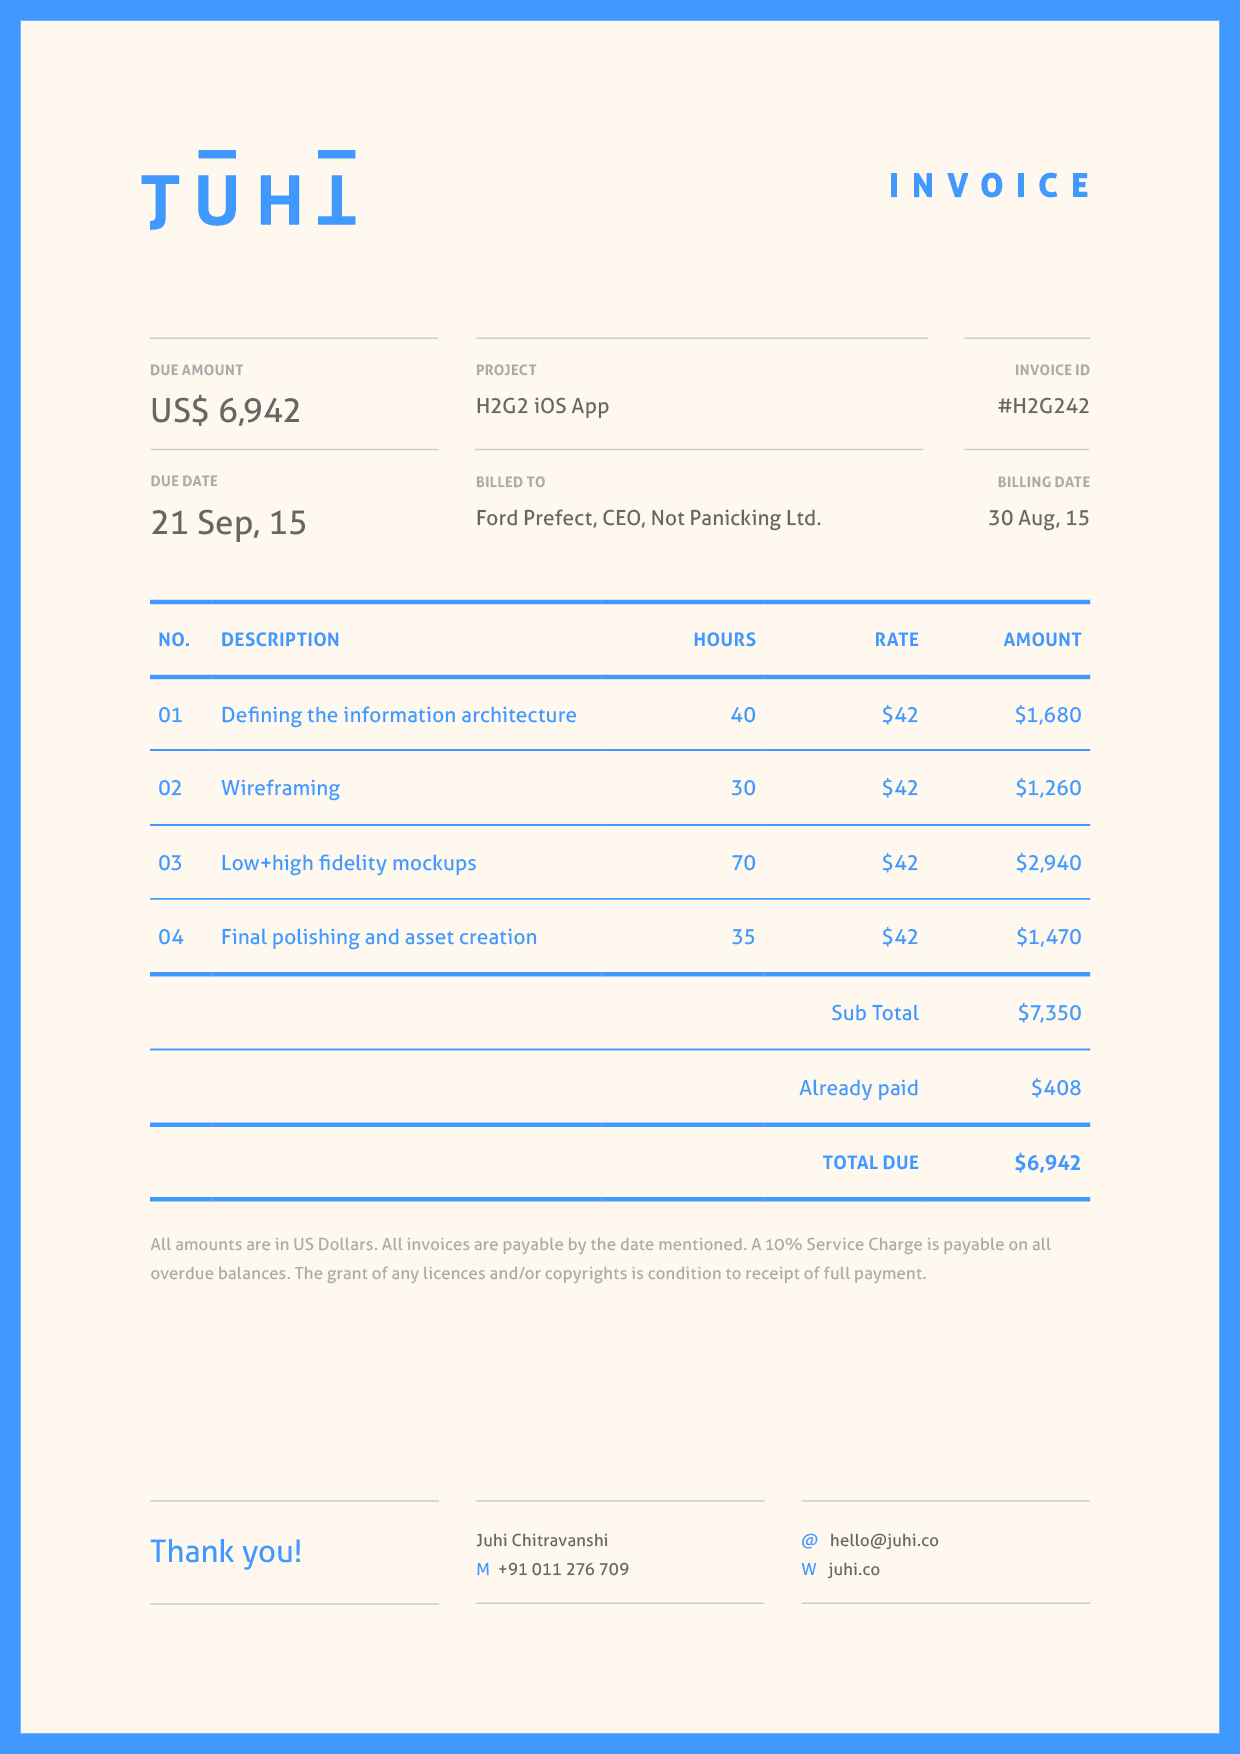 Centralasianshepherdus  Nice Dont Hold Back On Your Invoice  Inspiring Designs  With Interesting Invoice By Juhi Chitravanshi Follow With Awesome Verizon Invoice Also Creating An Invoice In Quickbooks In Addition Make A Free Invoice And Invoice Api As Well As Invoice Template Illustrator Additionally Sample Business Invoice From Inspirationfeedcom With Centralasianshepherdus  Interesting Dont Hold Back On Your Invoice  Inspiring Designs  With Awesome Invoice By Juhi Chitravanshi Follow And Nice Verizon Invoice Also Creating An Invoice In Quickbooks In Addition Make A Free Invoice From Inspirationfeedcom